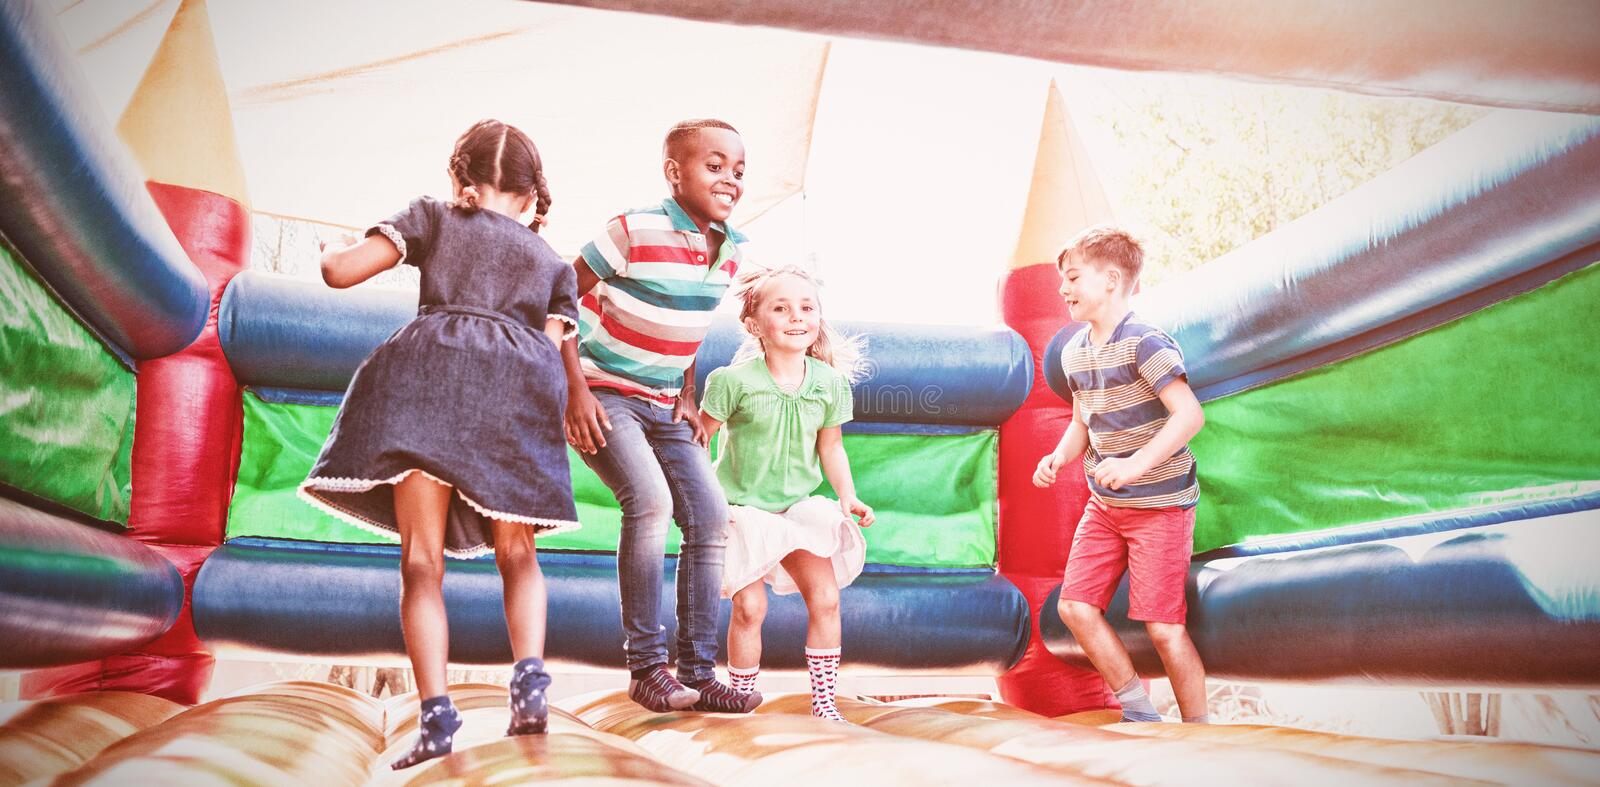 Friends playing on bouncy castle at playground royalty free stock photos